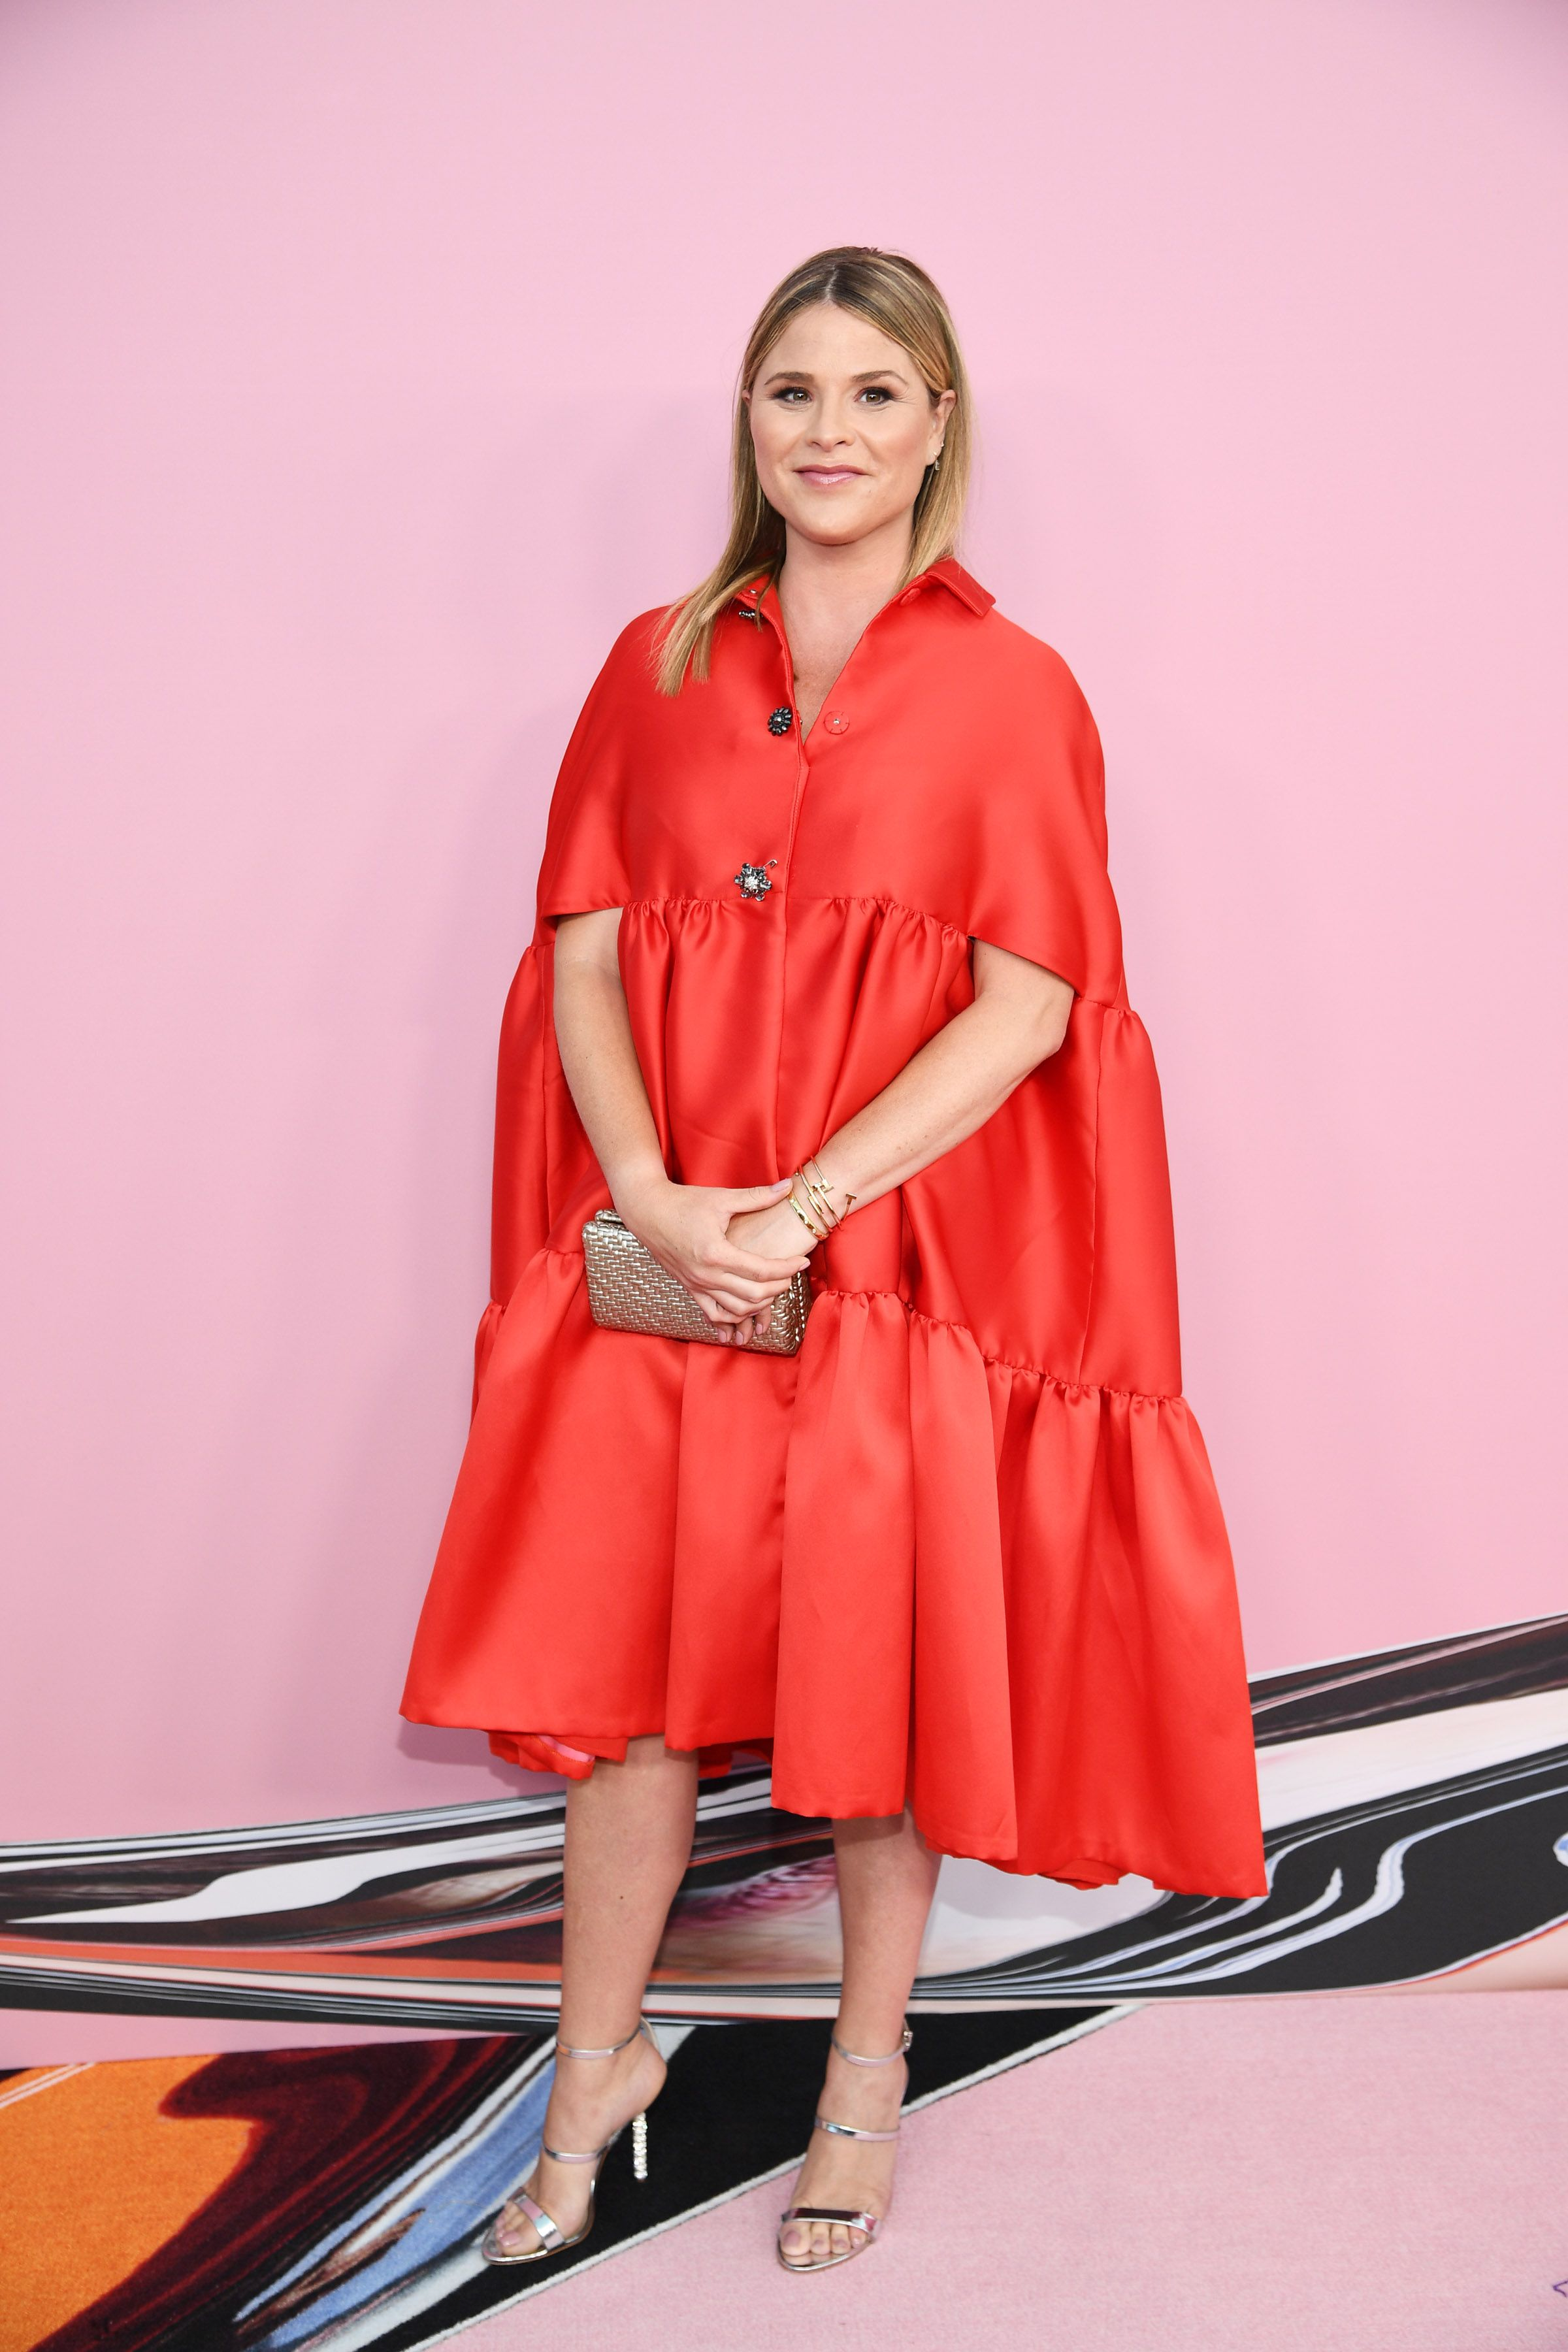 Jenna Bush at the CFDA Fashion Awards at the Brooklyn Museum of Art on June 03, 2019 in New York City | Photo: Getty Images